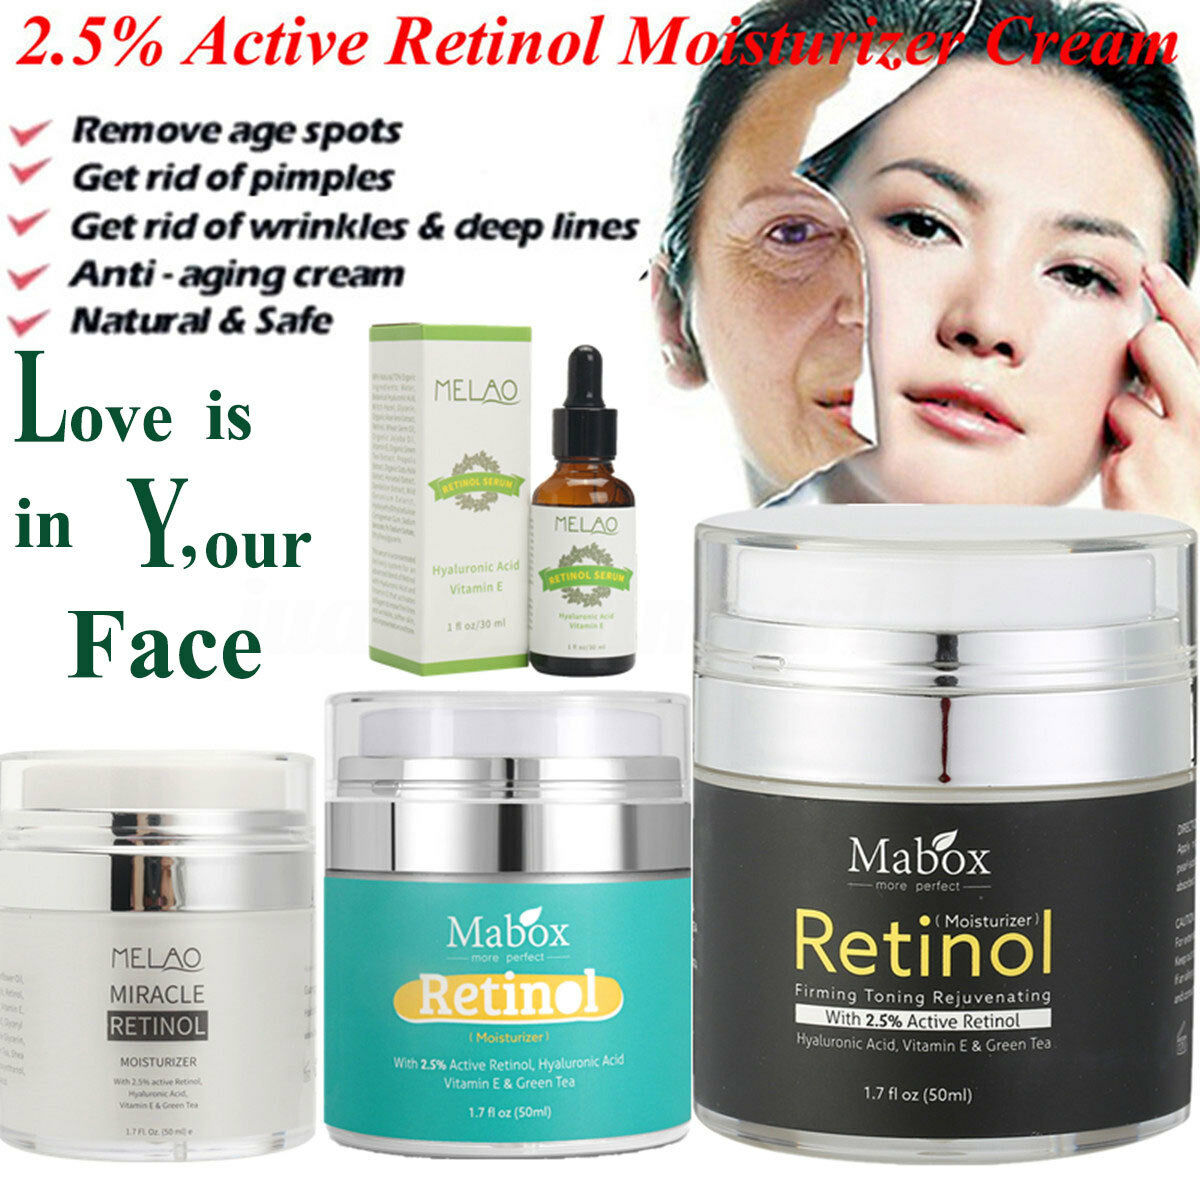 Retinol 25 Face Cream Serum Skin Anti Aging Wrinkles Hyaluronic Acid Vitamin E